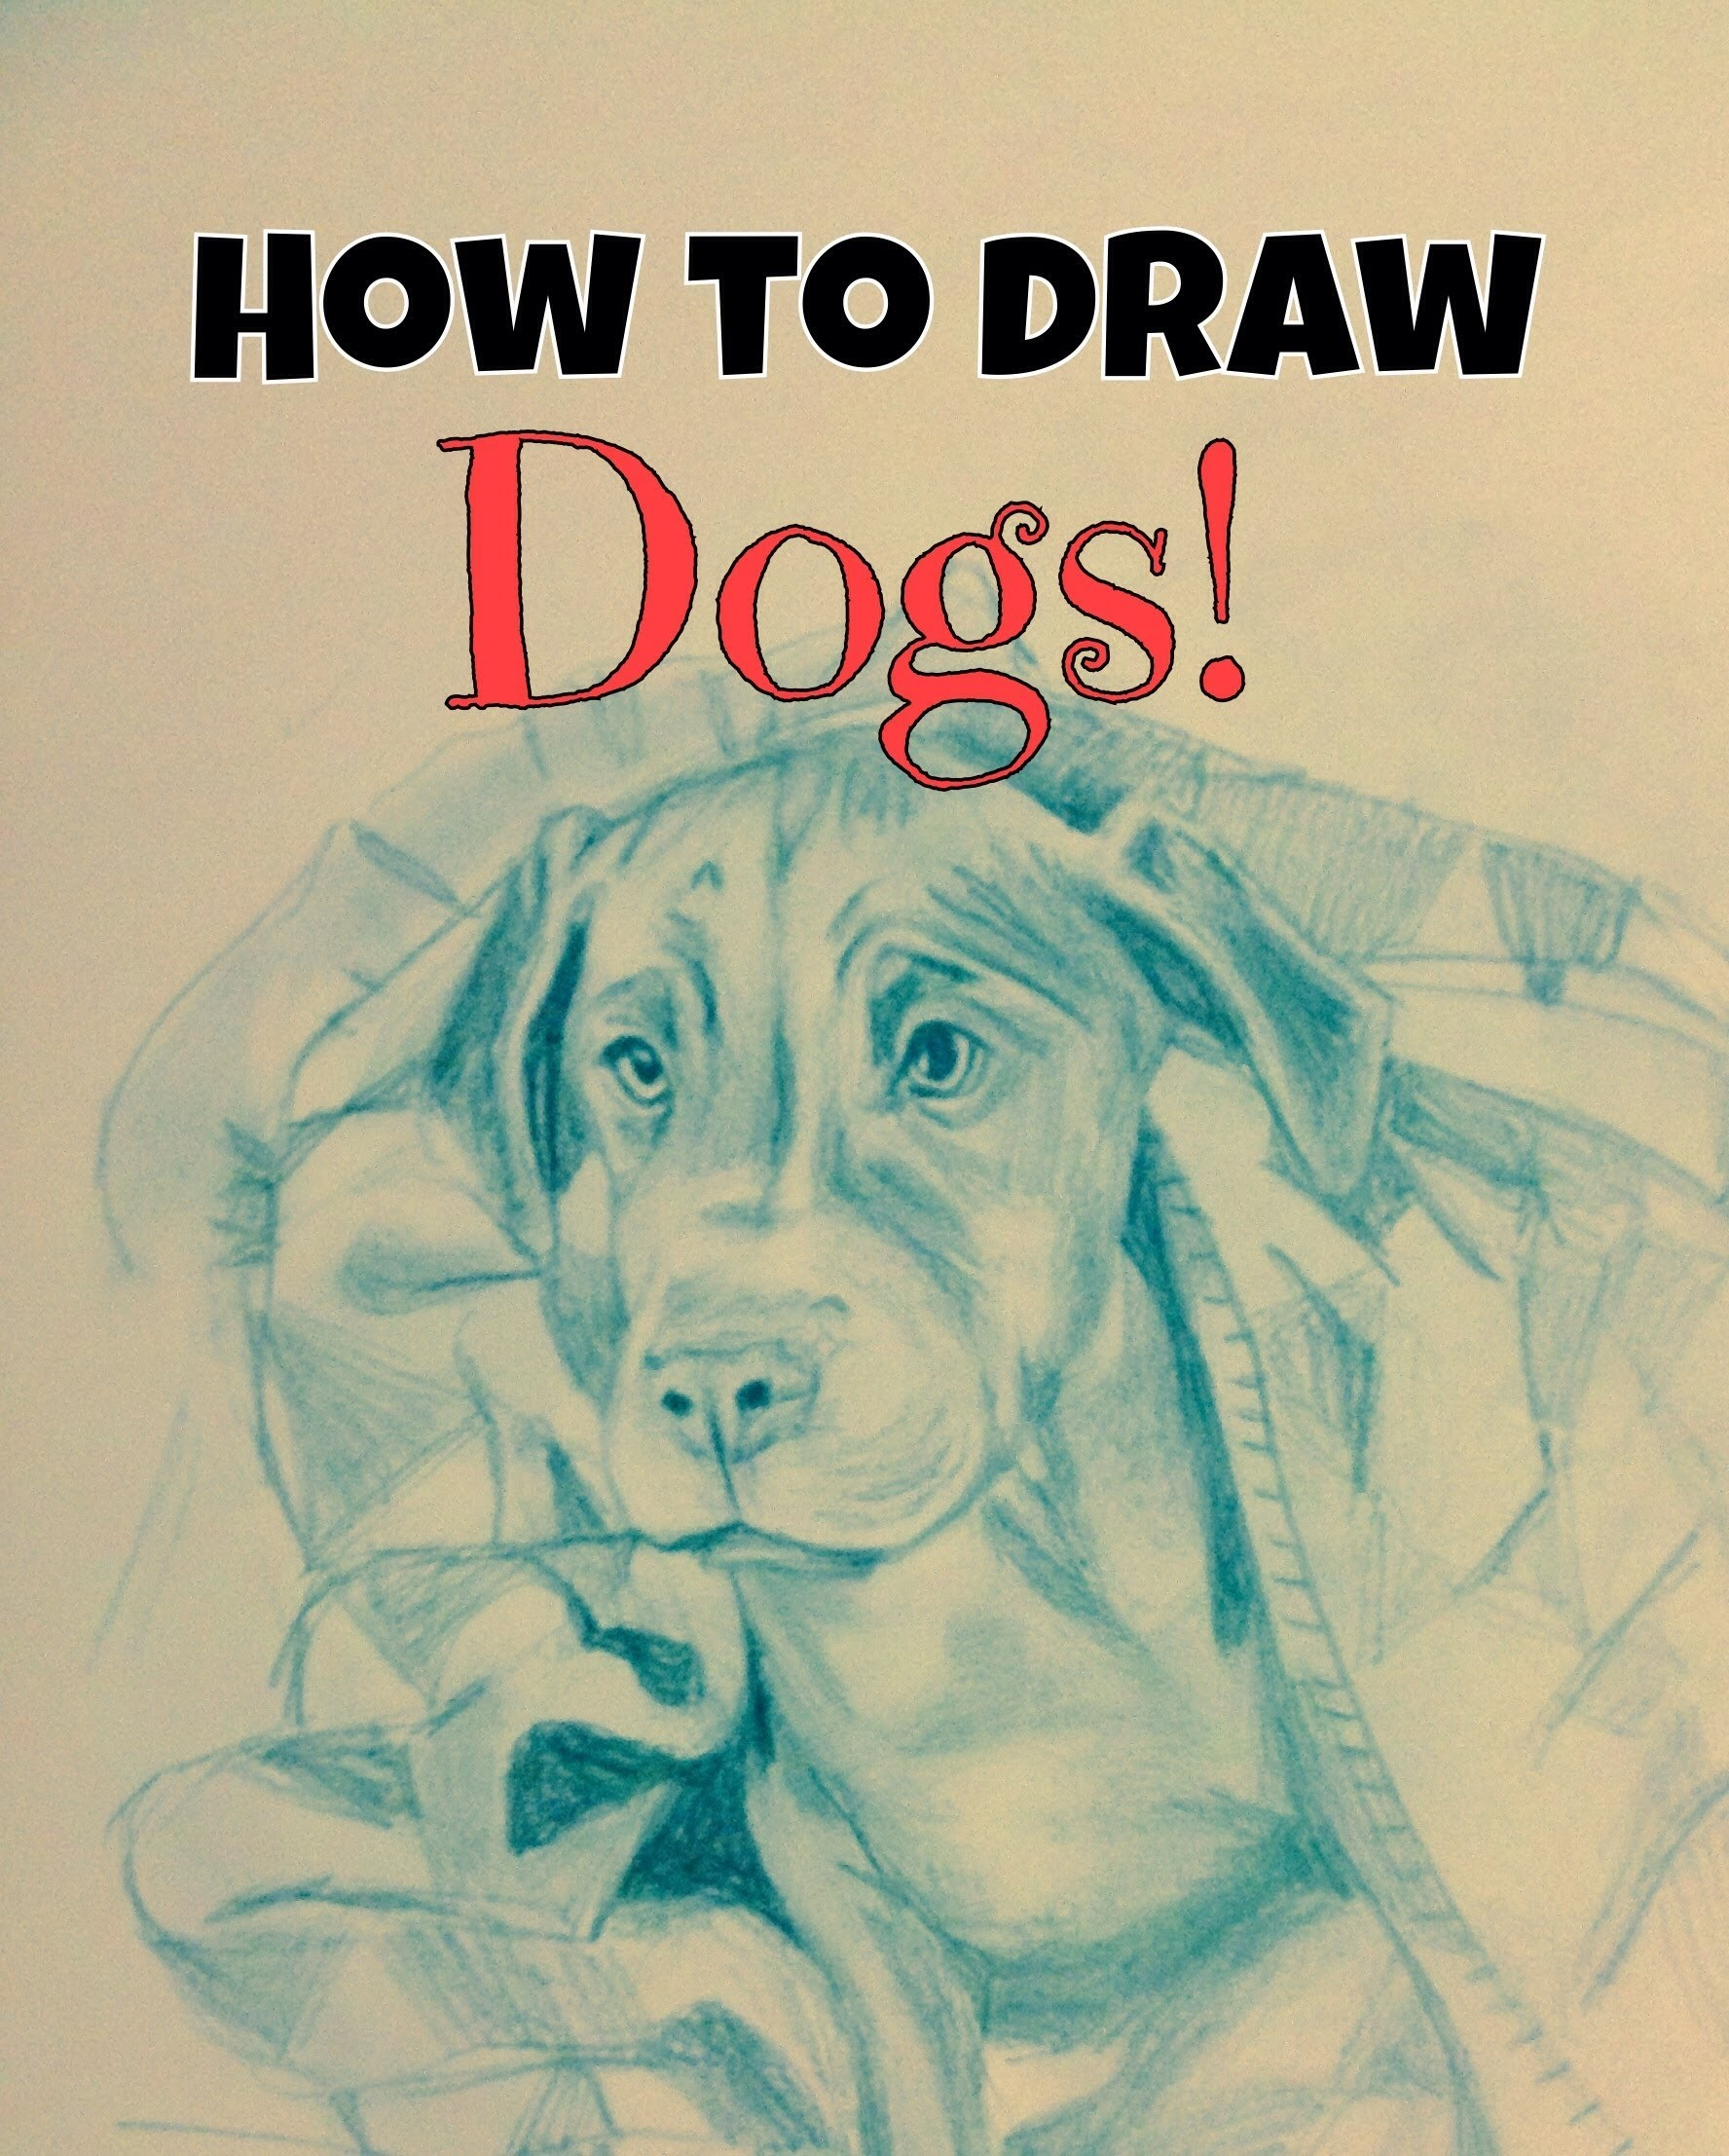 How to draw dogs! Tutorial